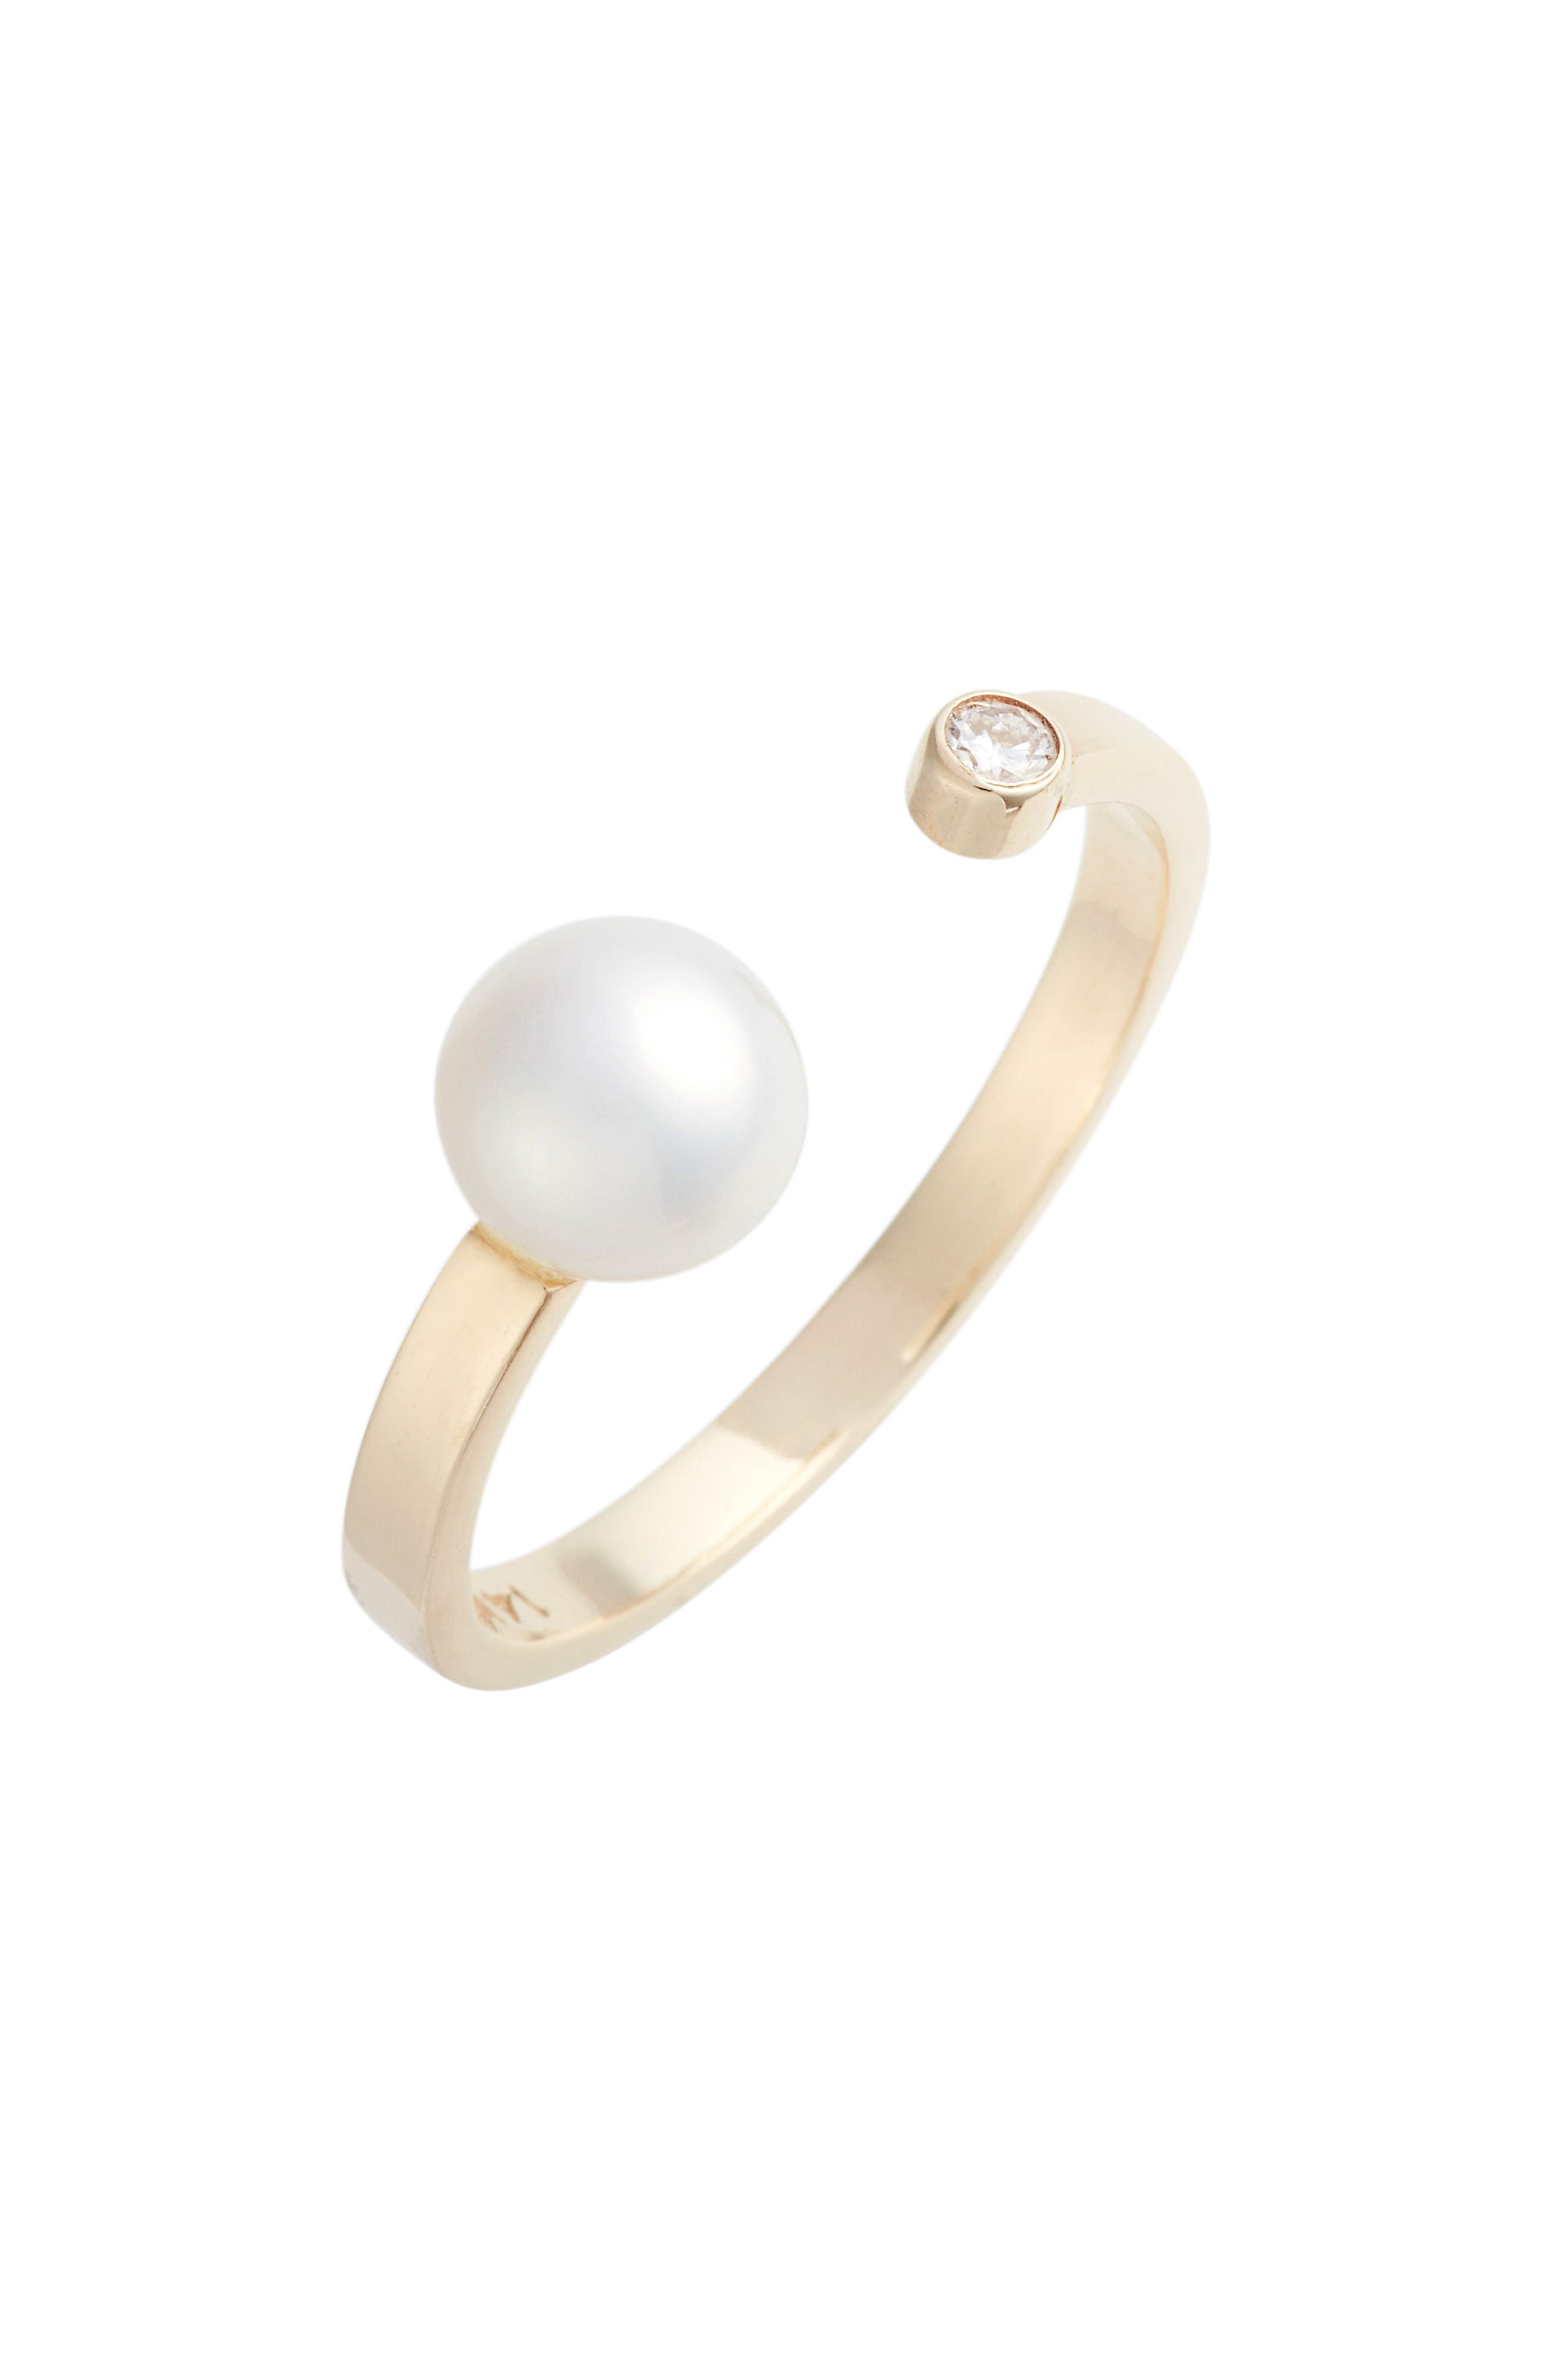 Main Image - Poppy Finch Diamond & Pearl Bypass Ring